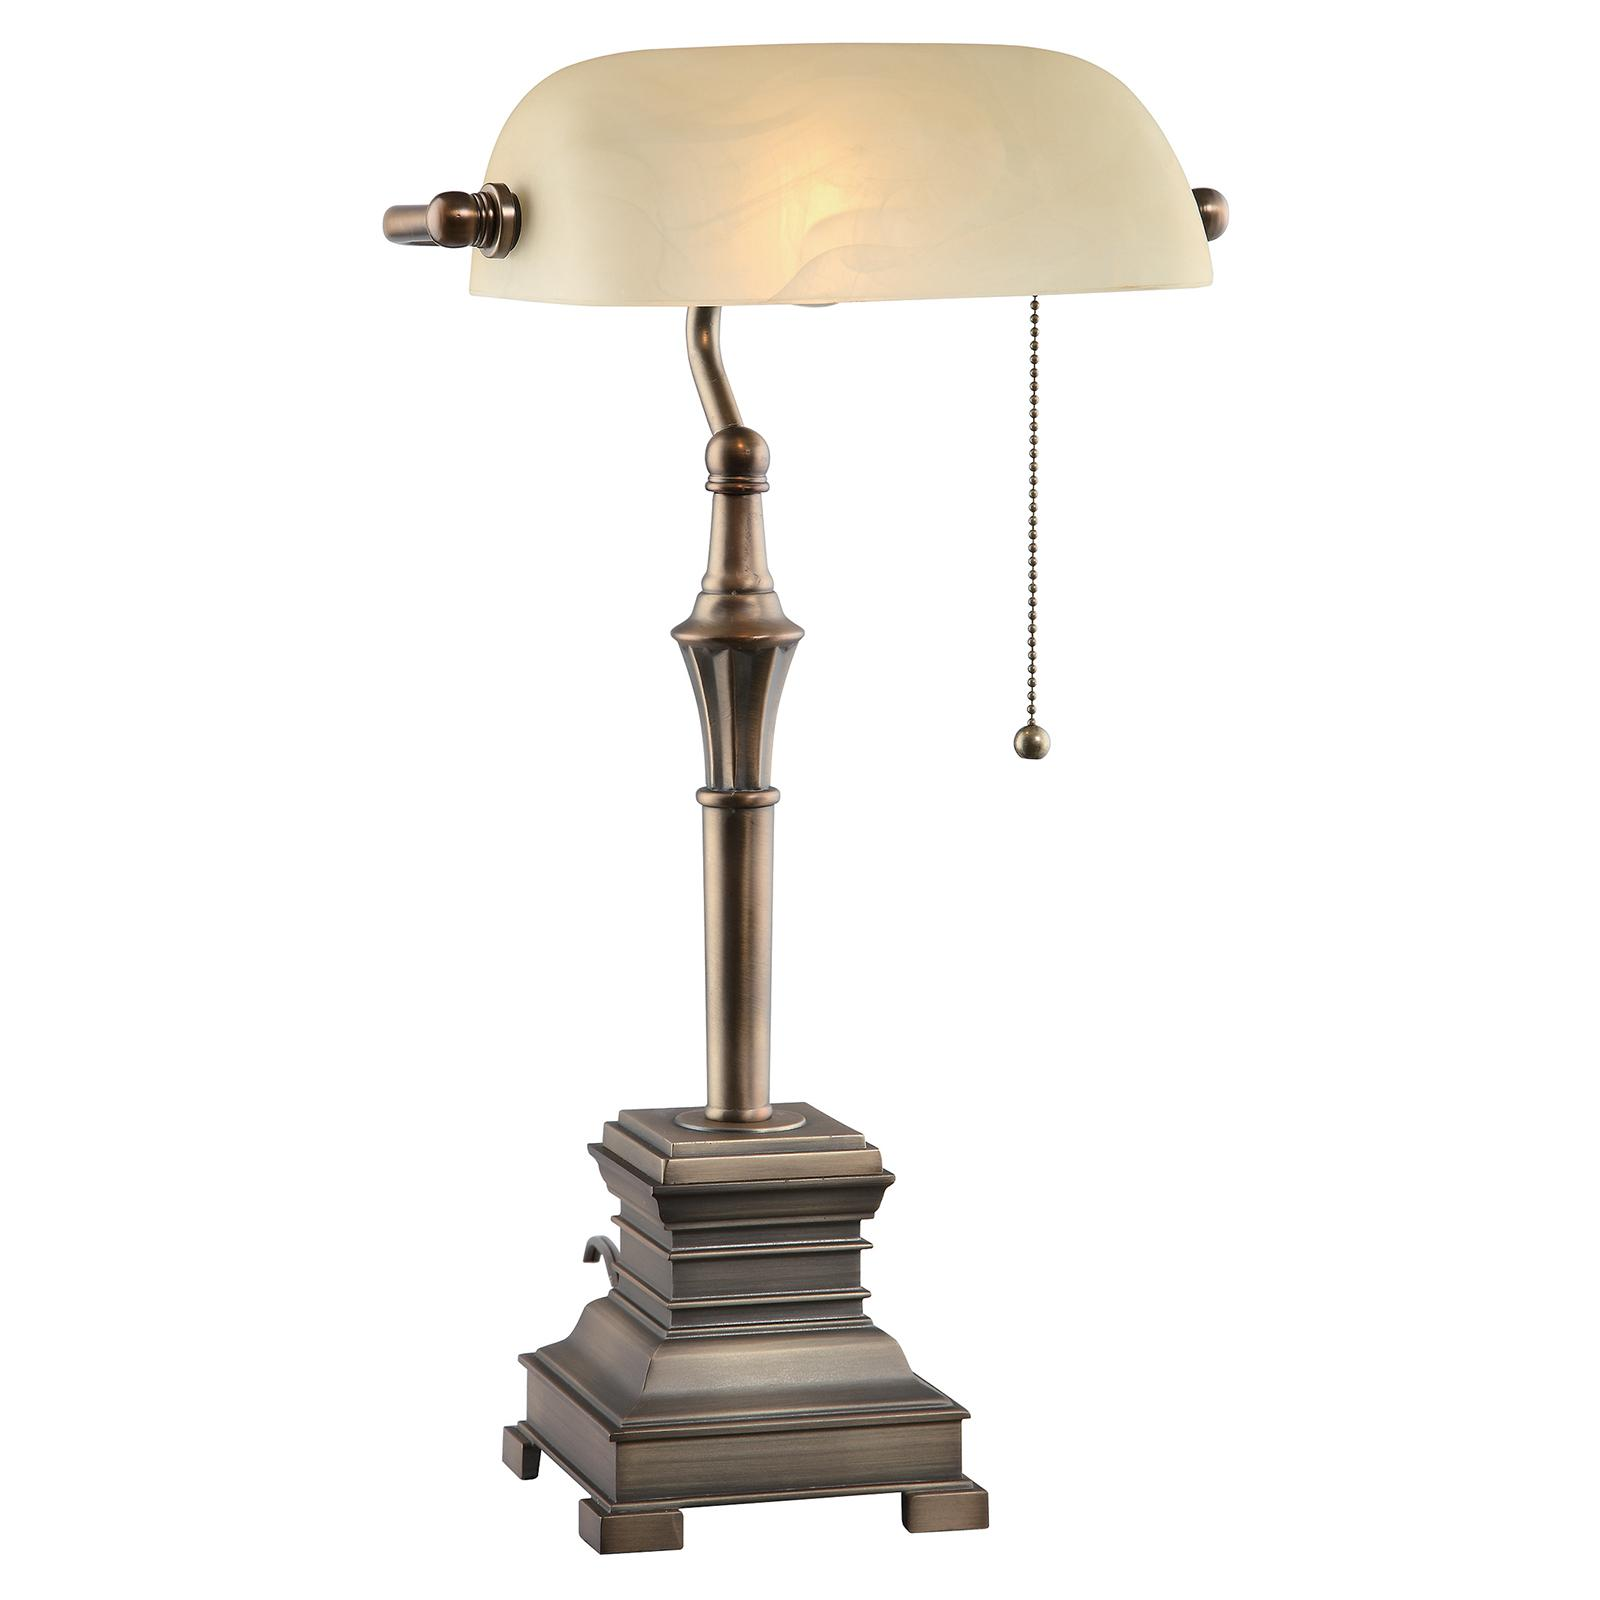 Crestview Collection Malone Desk Lamp - CVAER302